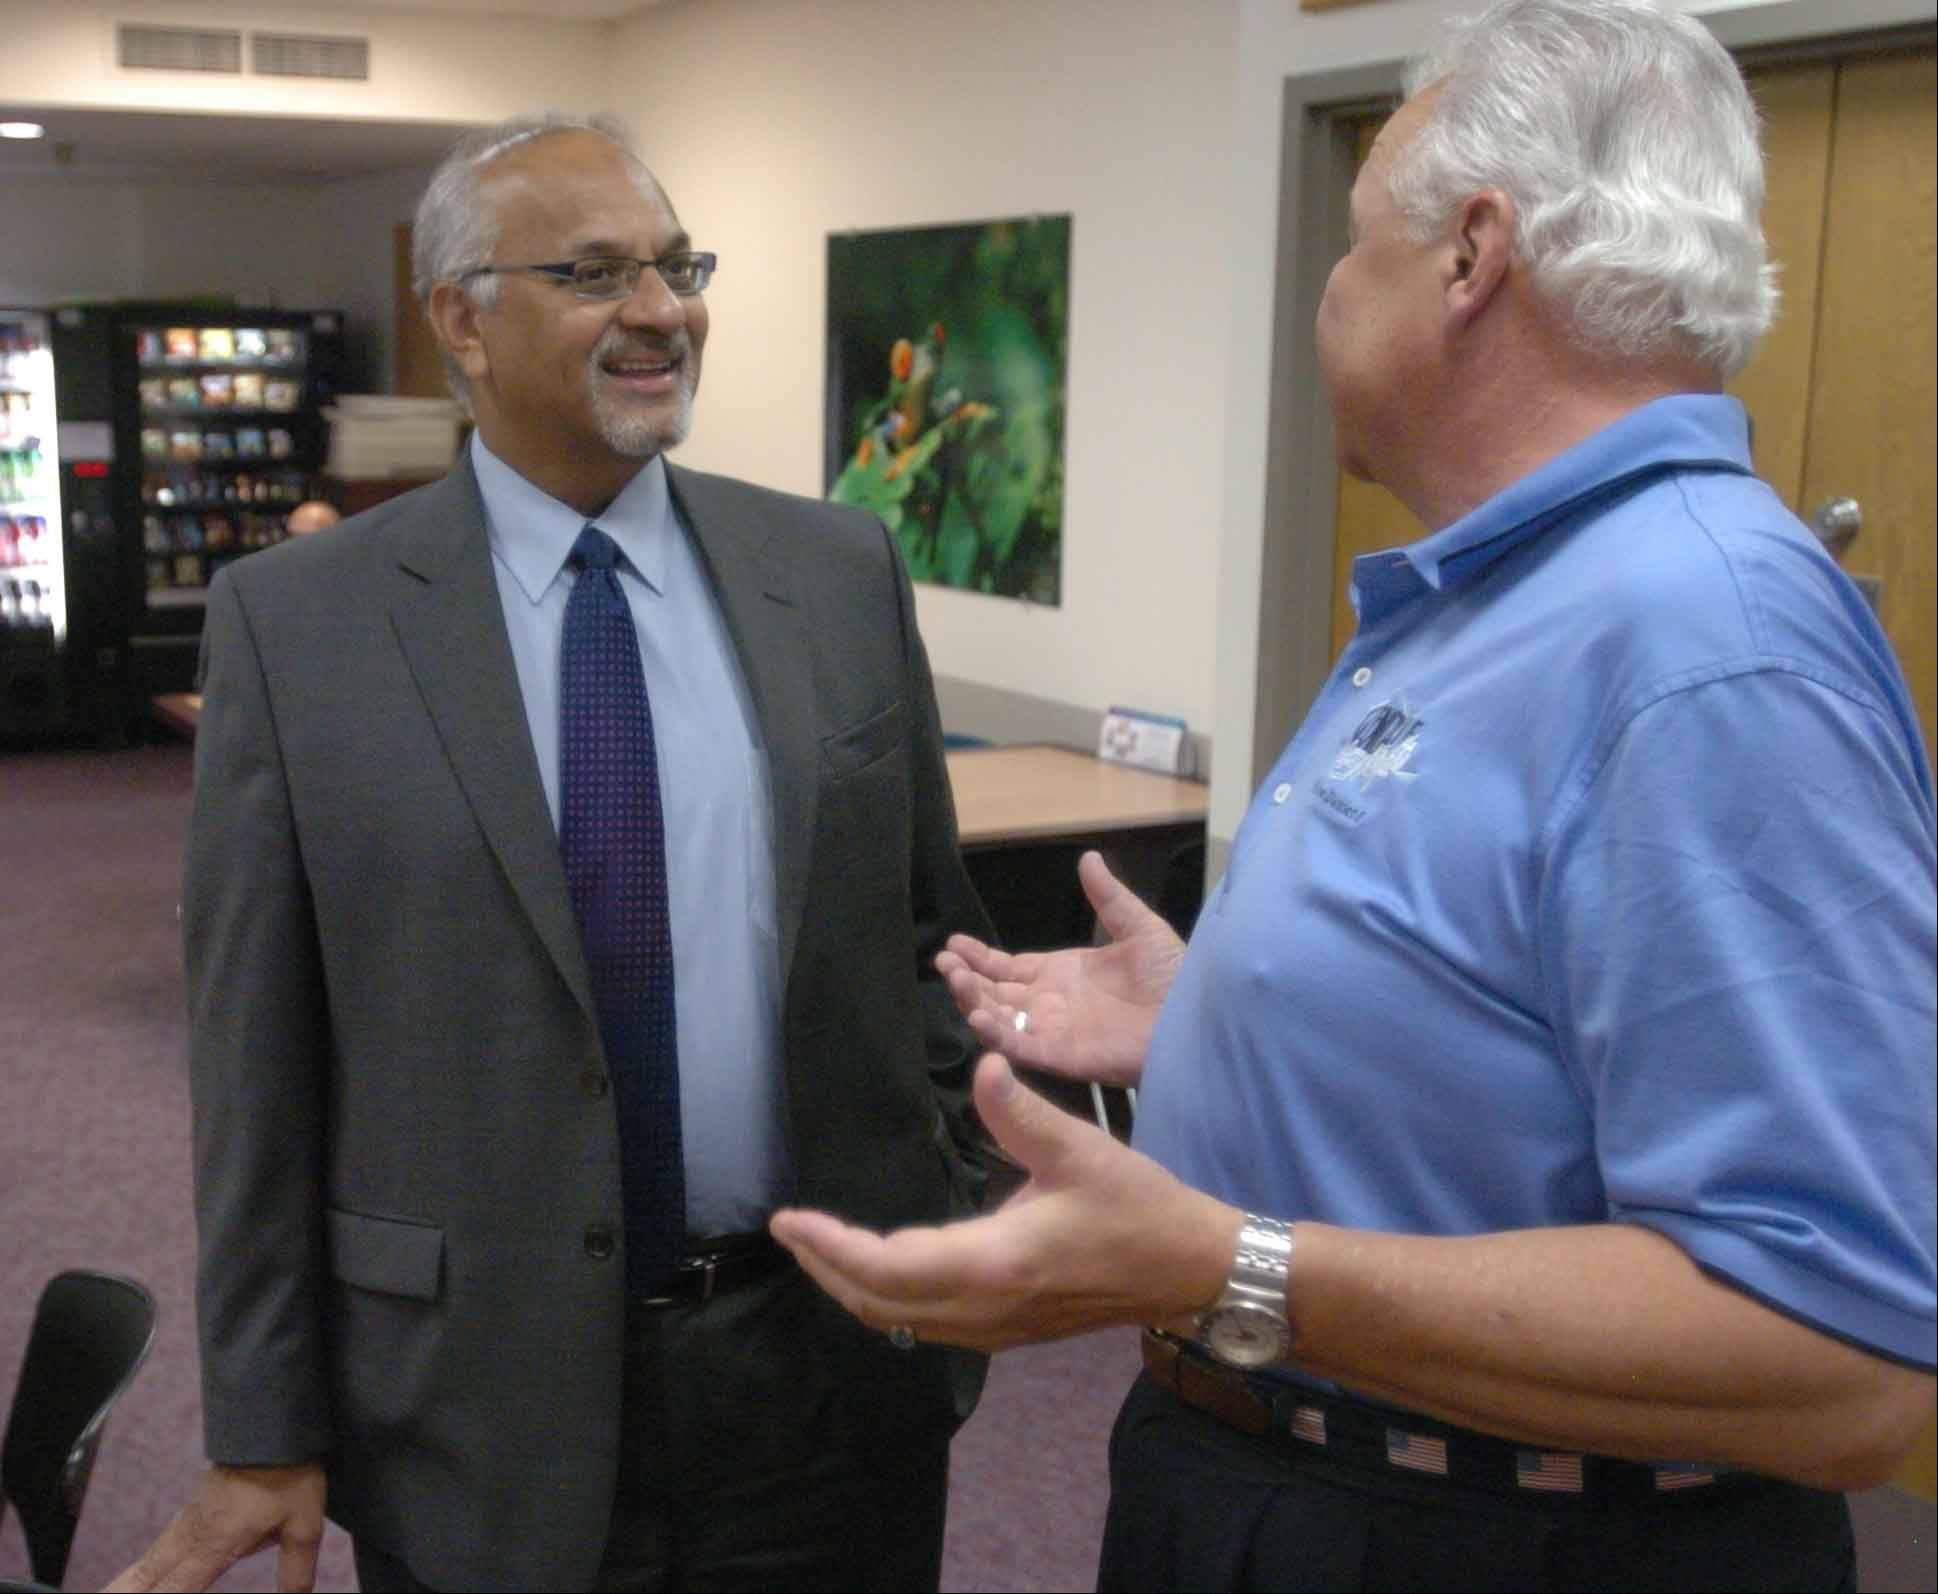 Adventist GlenOaks Hospital CEO Brinsley Lewis is leaving after 12 years as head of the Glendale Heights hospital. He talks with Glendale Heights Trustee Chester Pojack during a farewell celebration held Wednesday at the hospital.